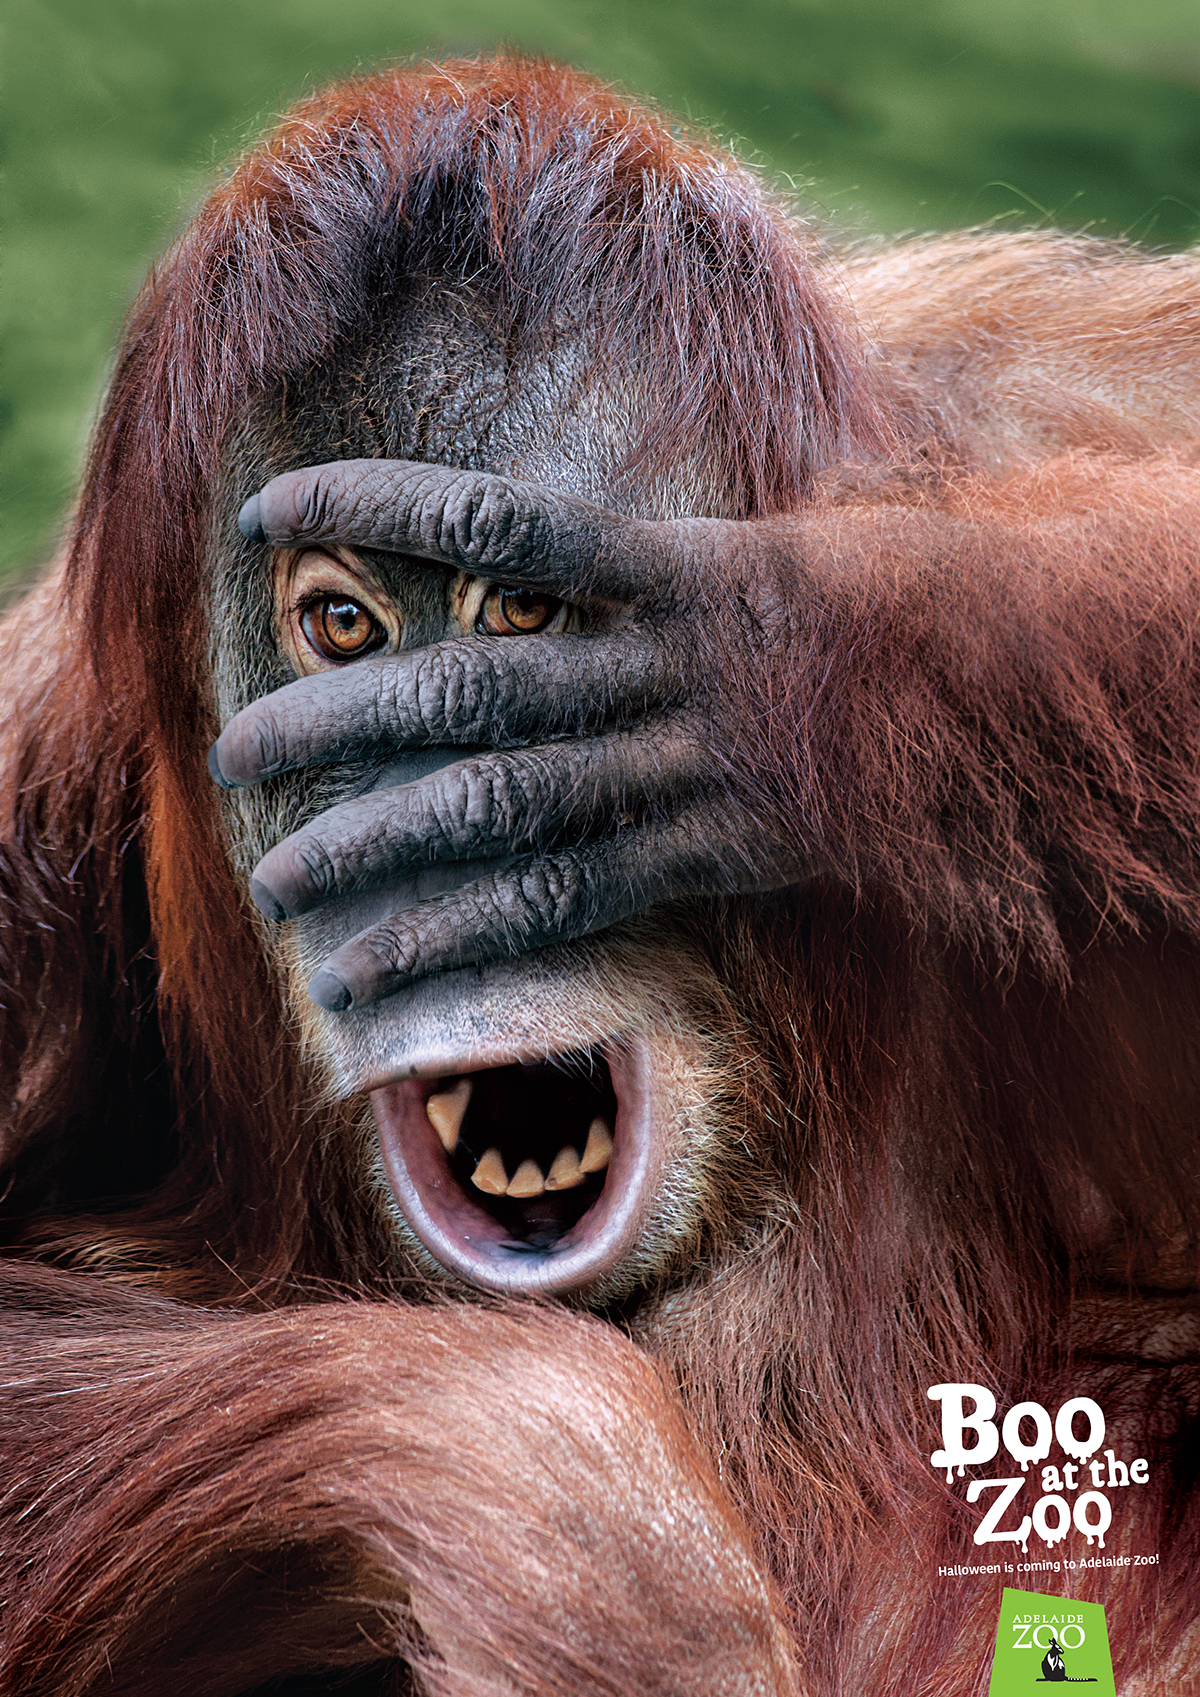 Zoos SA_Boo at the Zoo poster_Orangutan 1200px